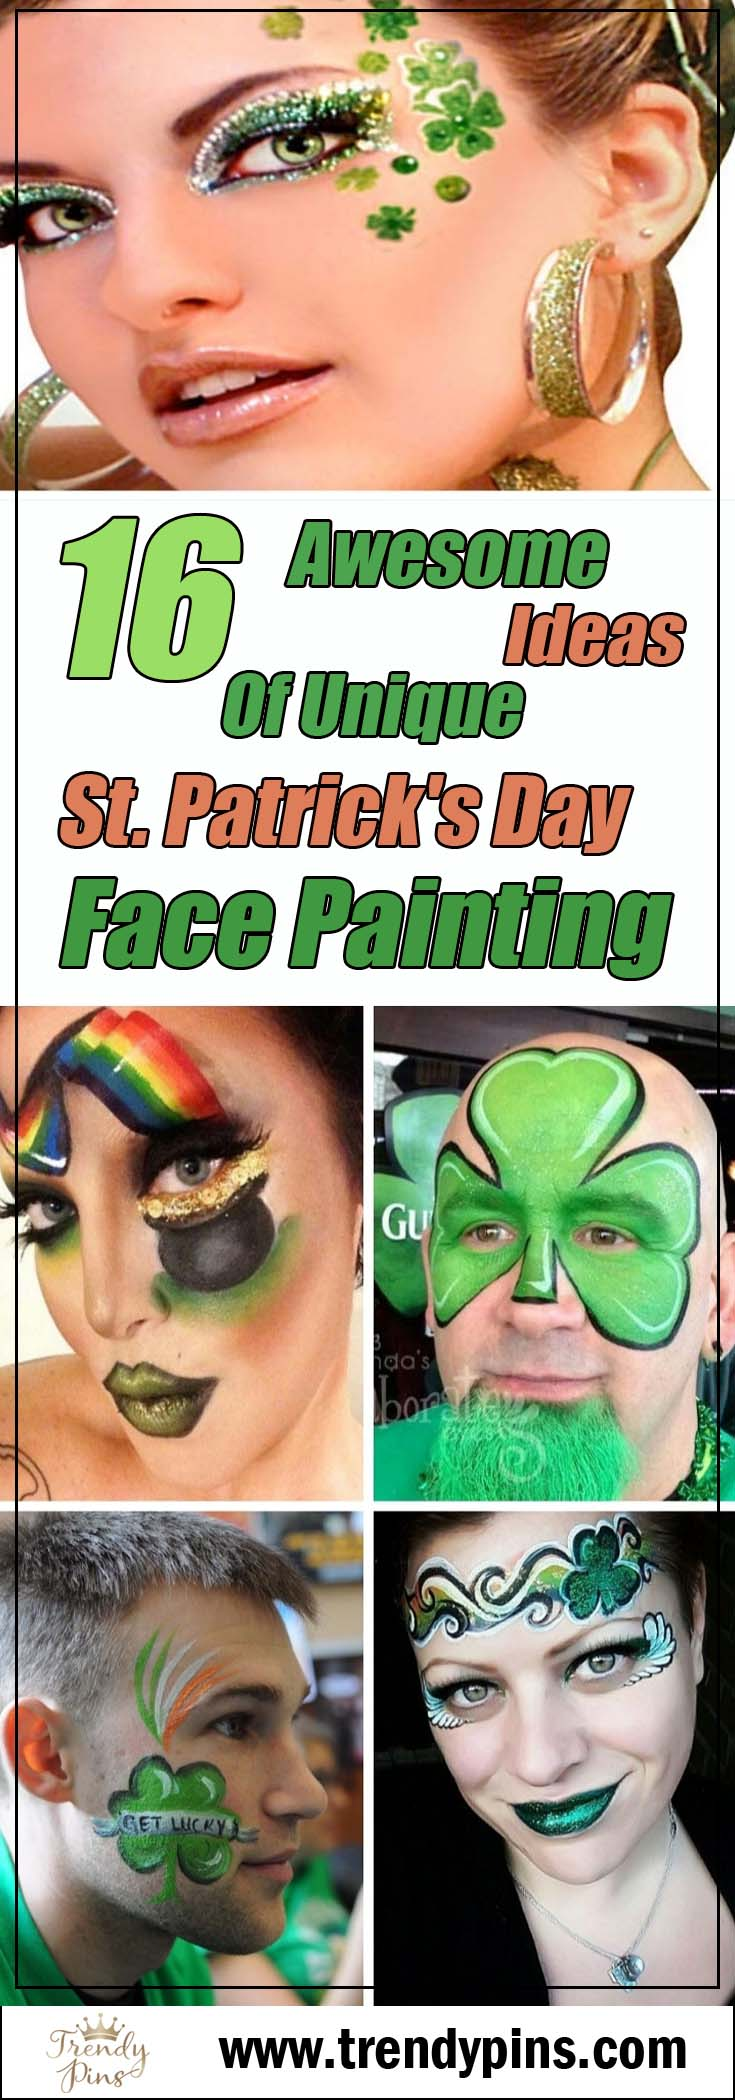 16 Awesome ideas of unique St. Patrick's Day face painting #St. Patrick's Day face painting #beauty #trendypins